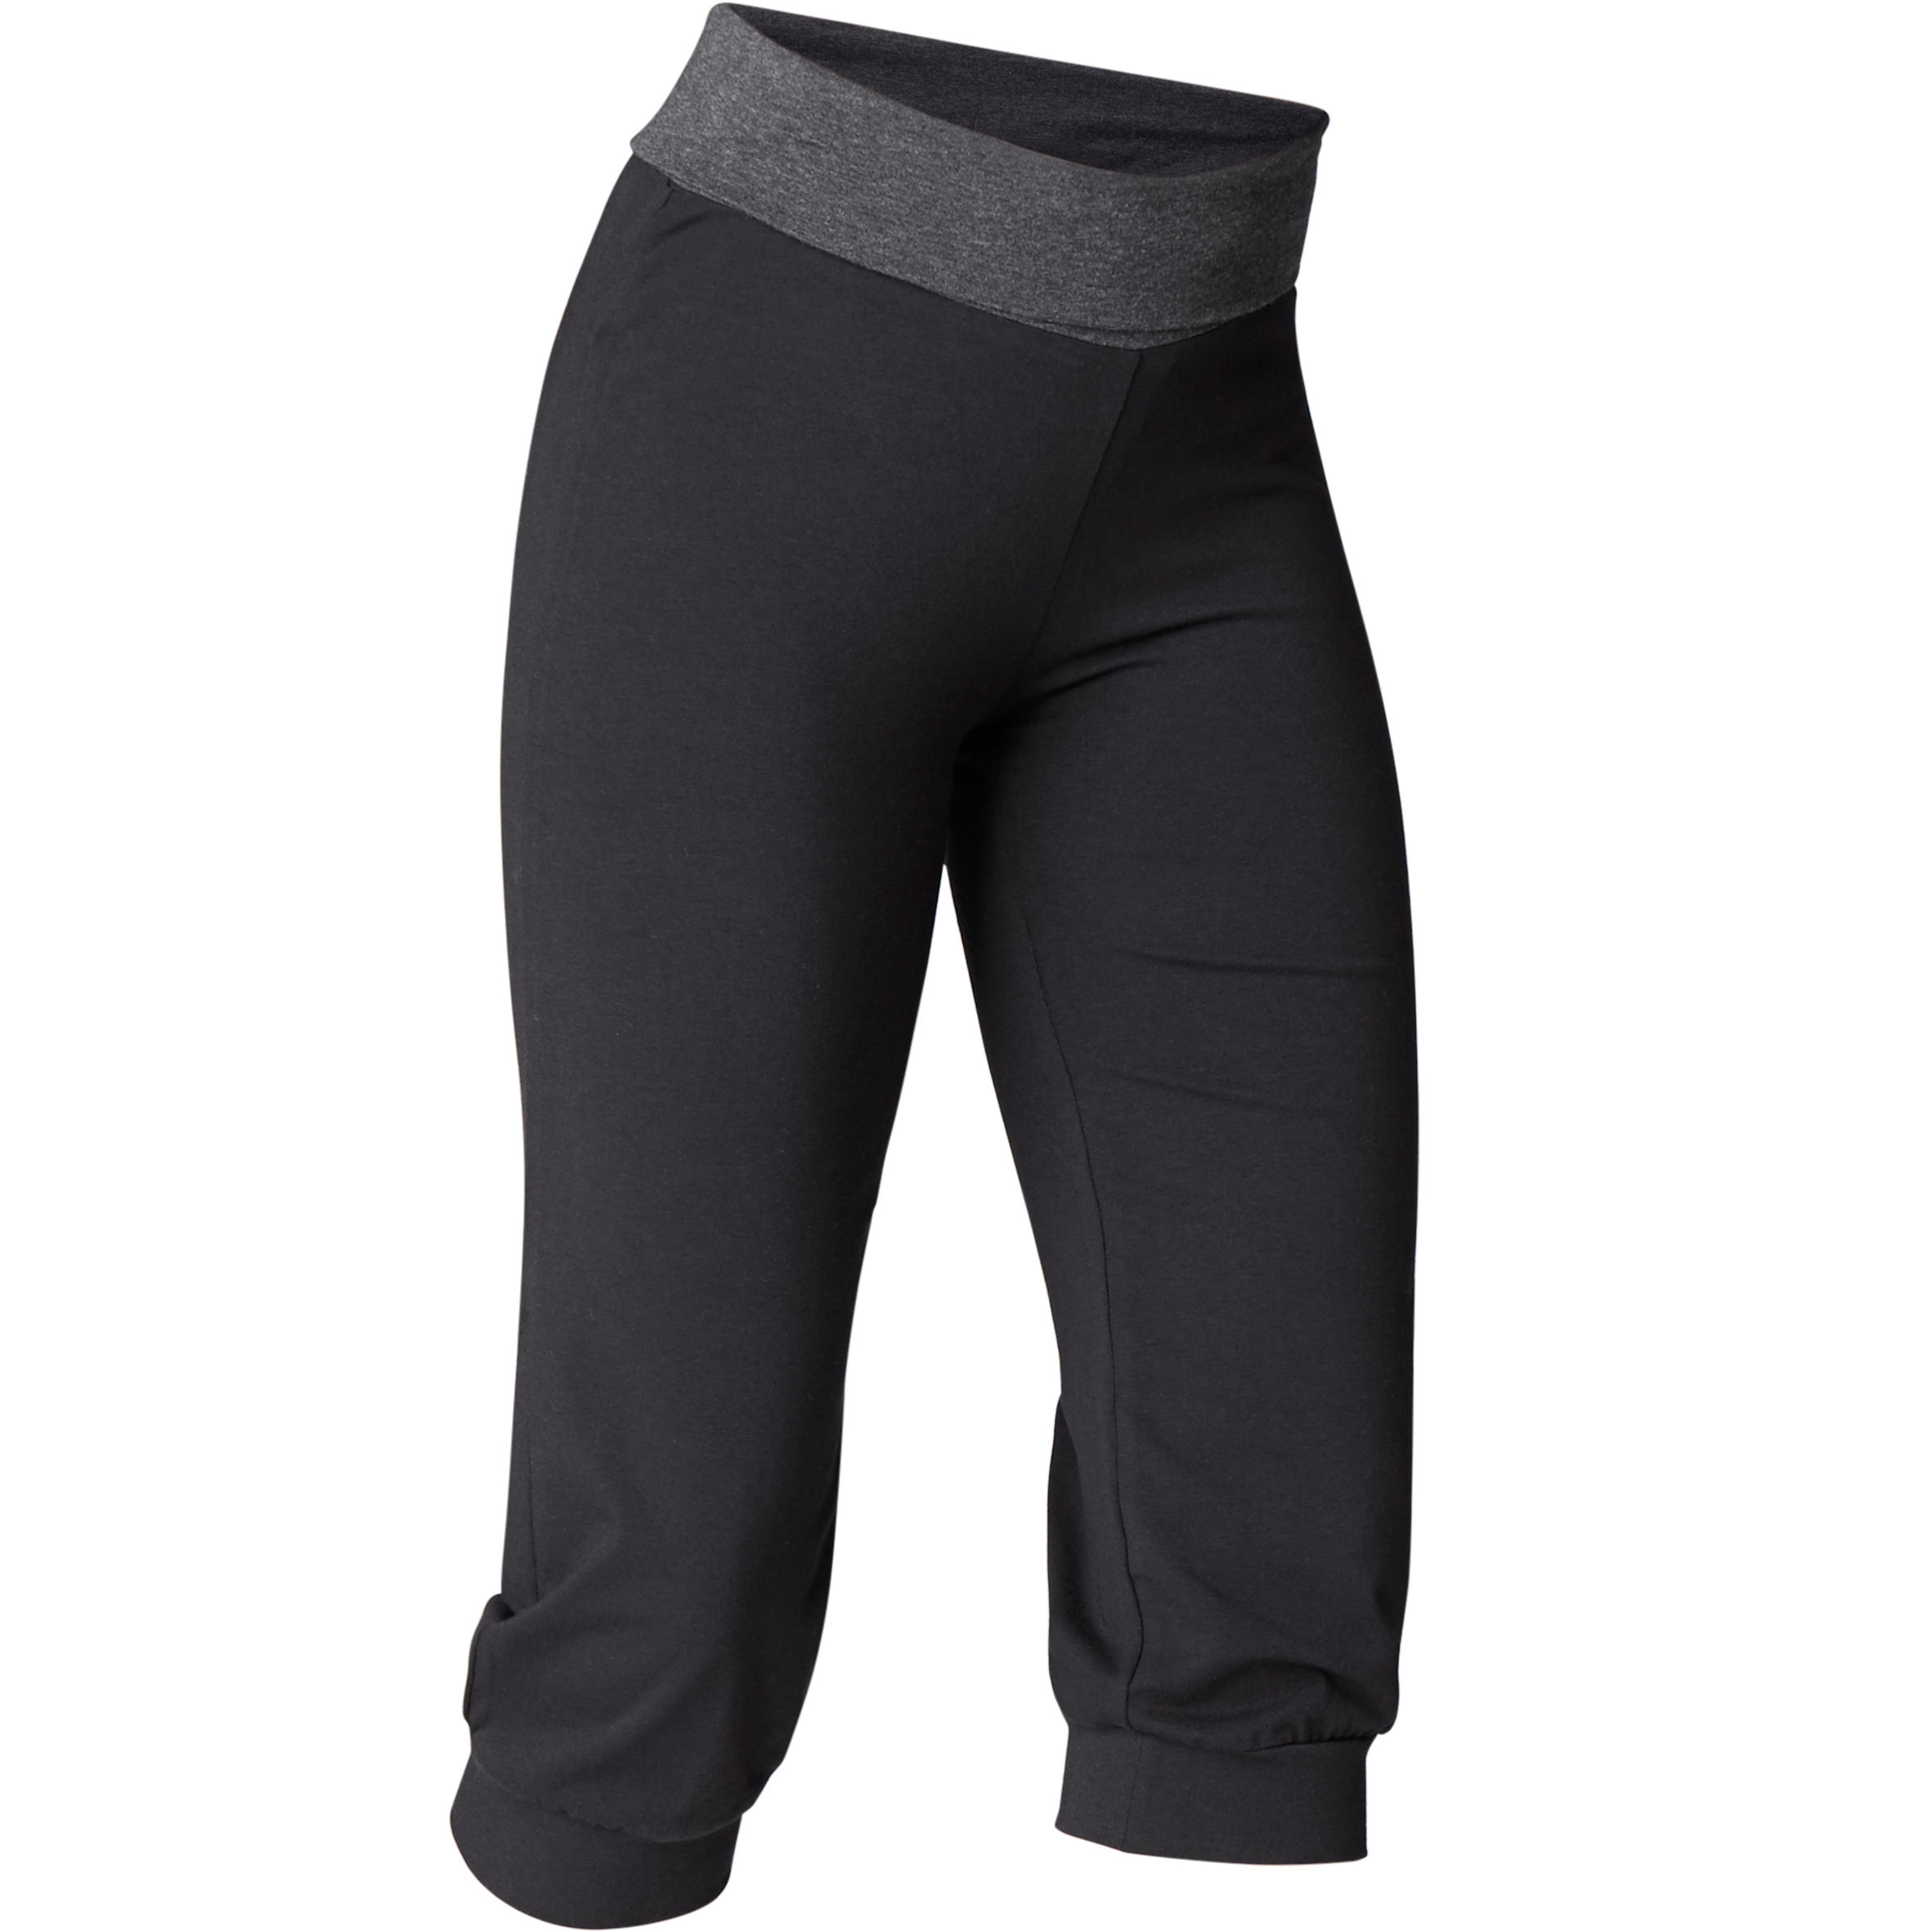 Women's Organic Cotton Gentle Yoga Cropped Bottoms - Black/Grey